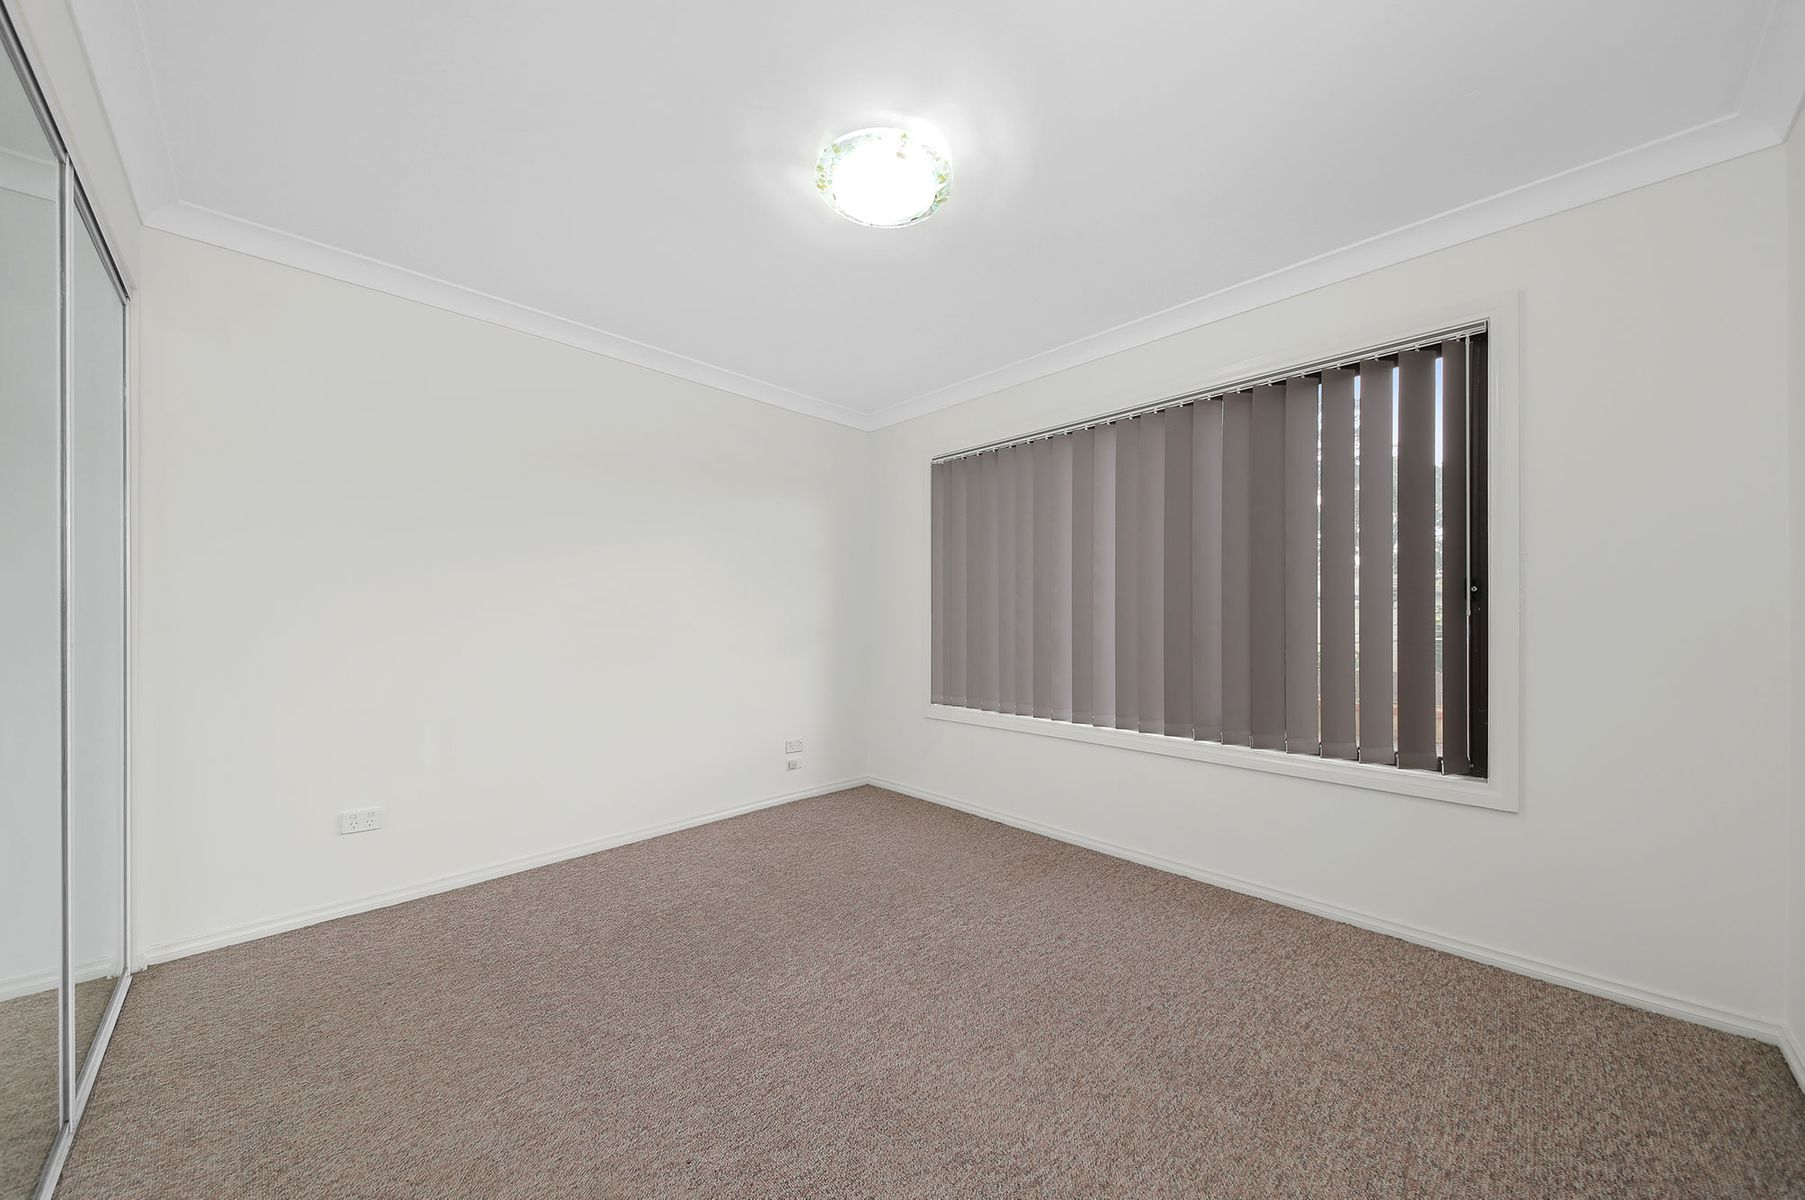 1A Garran Street, Fairfield West, NSW 2165